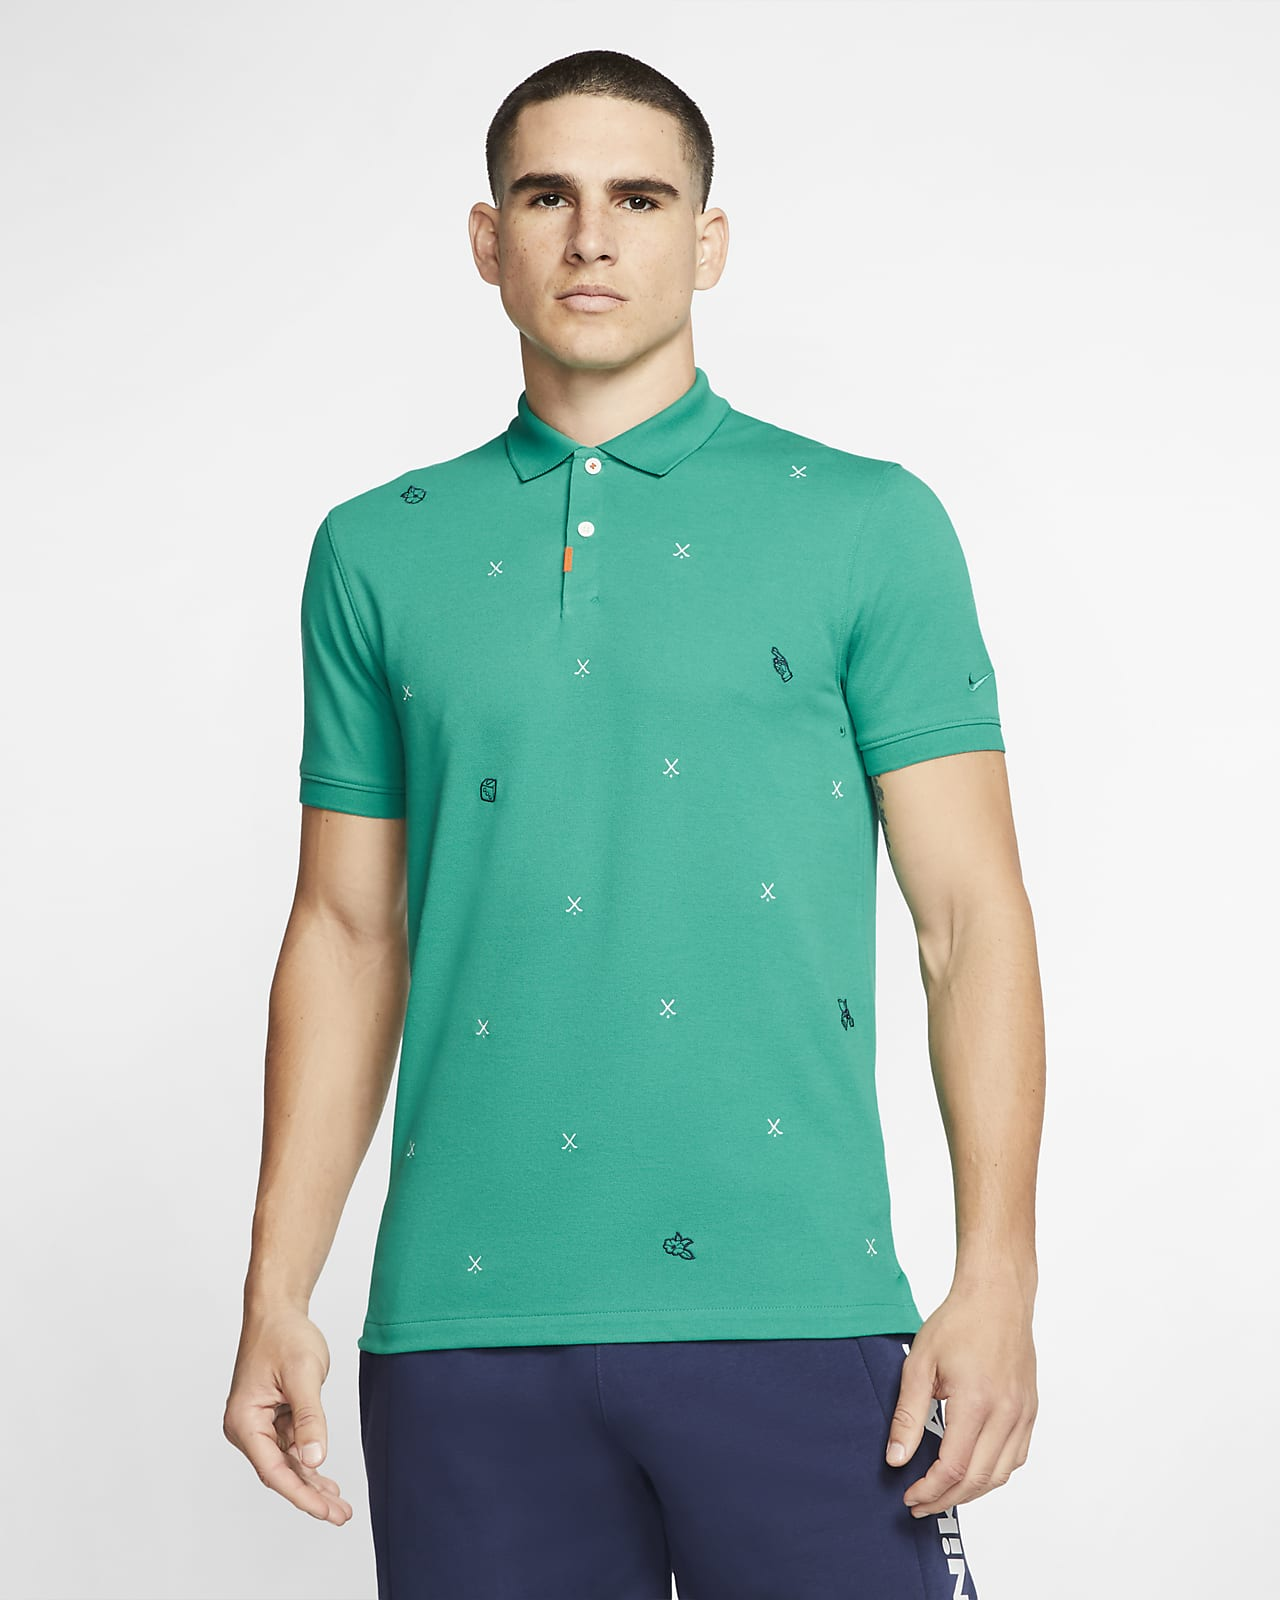 Polo Slim Fit The Nike Polo - Unisex